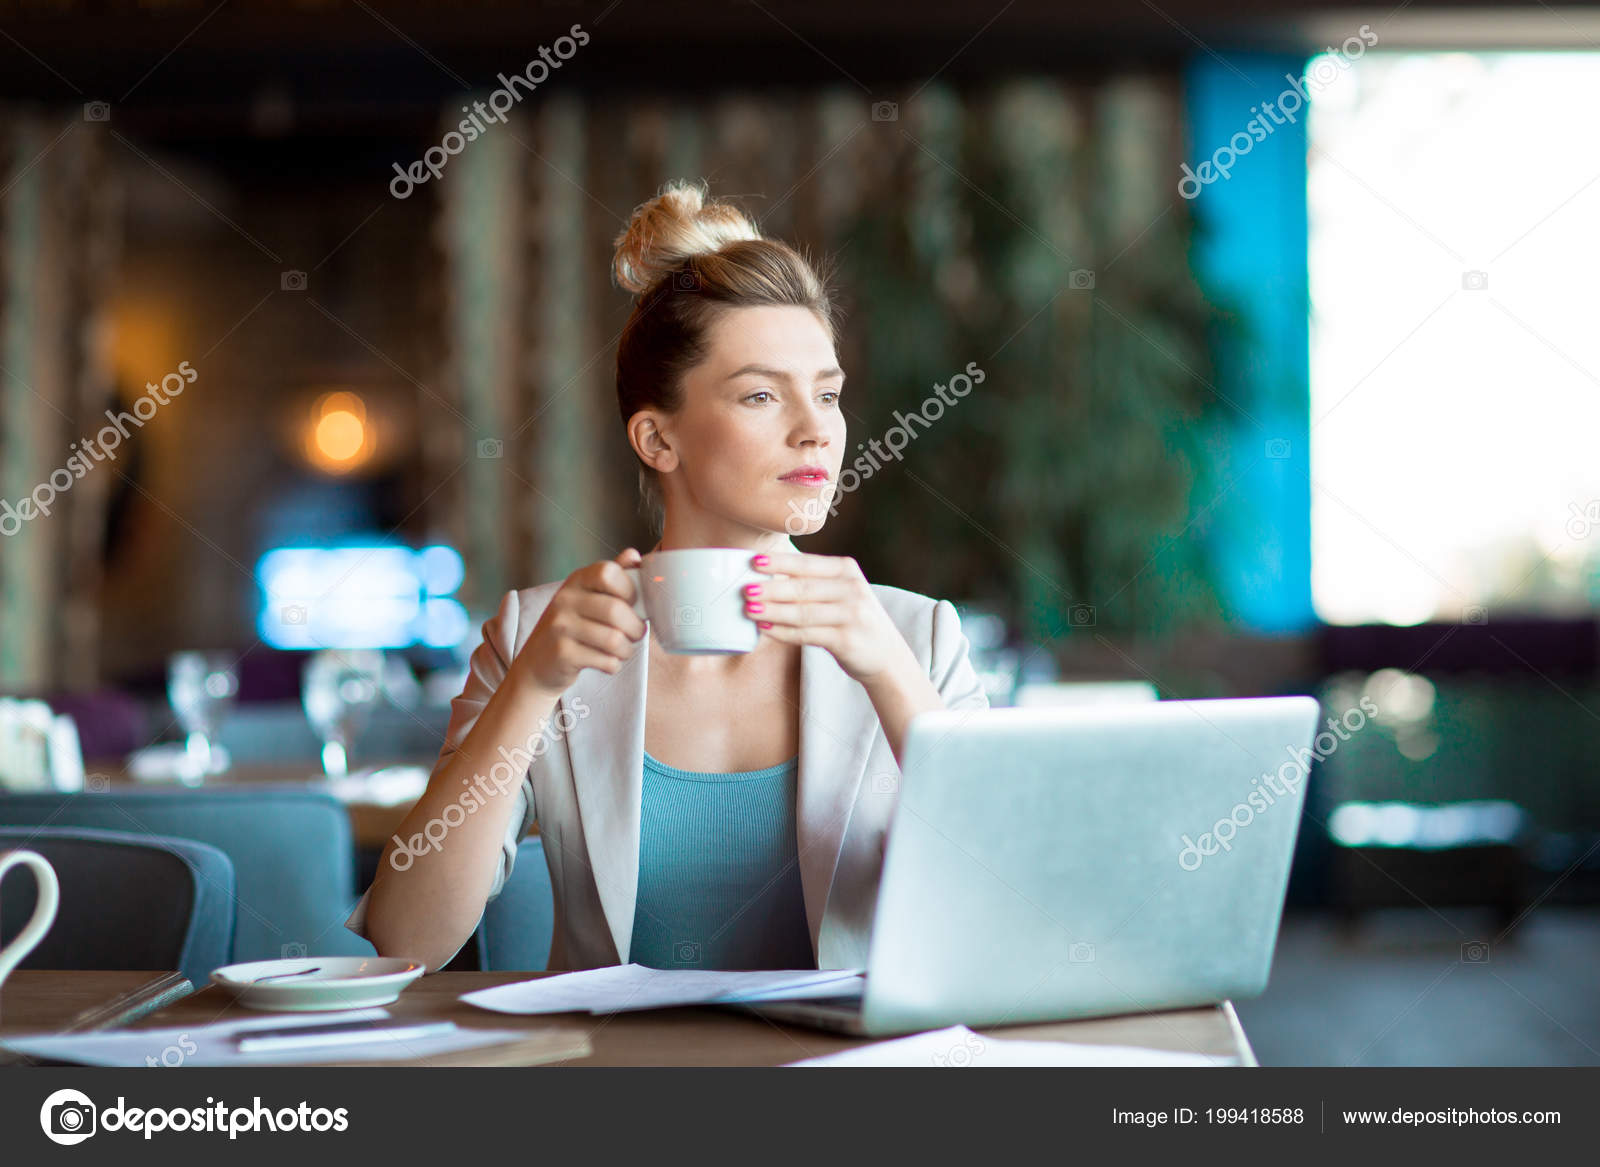 Young Pensive Businesswoman Cup Tea Coffee Thinking Working Ideas Front Stock Photo C Pressmaster 199418588